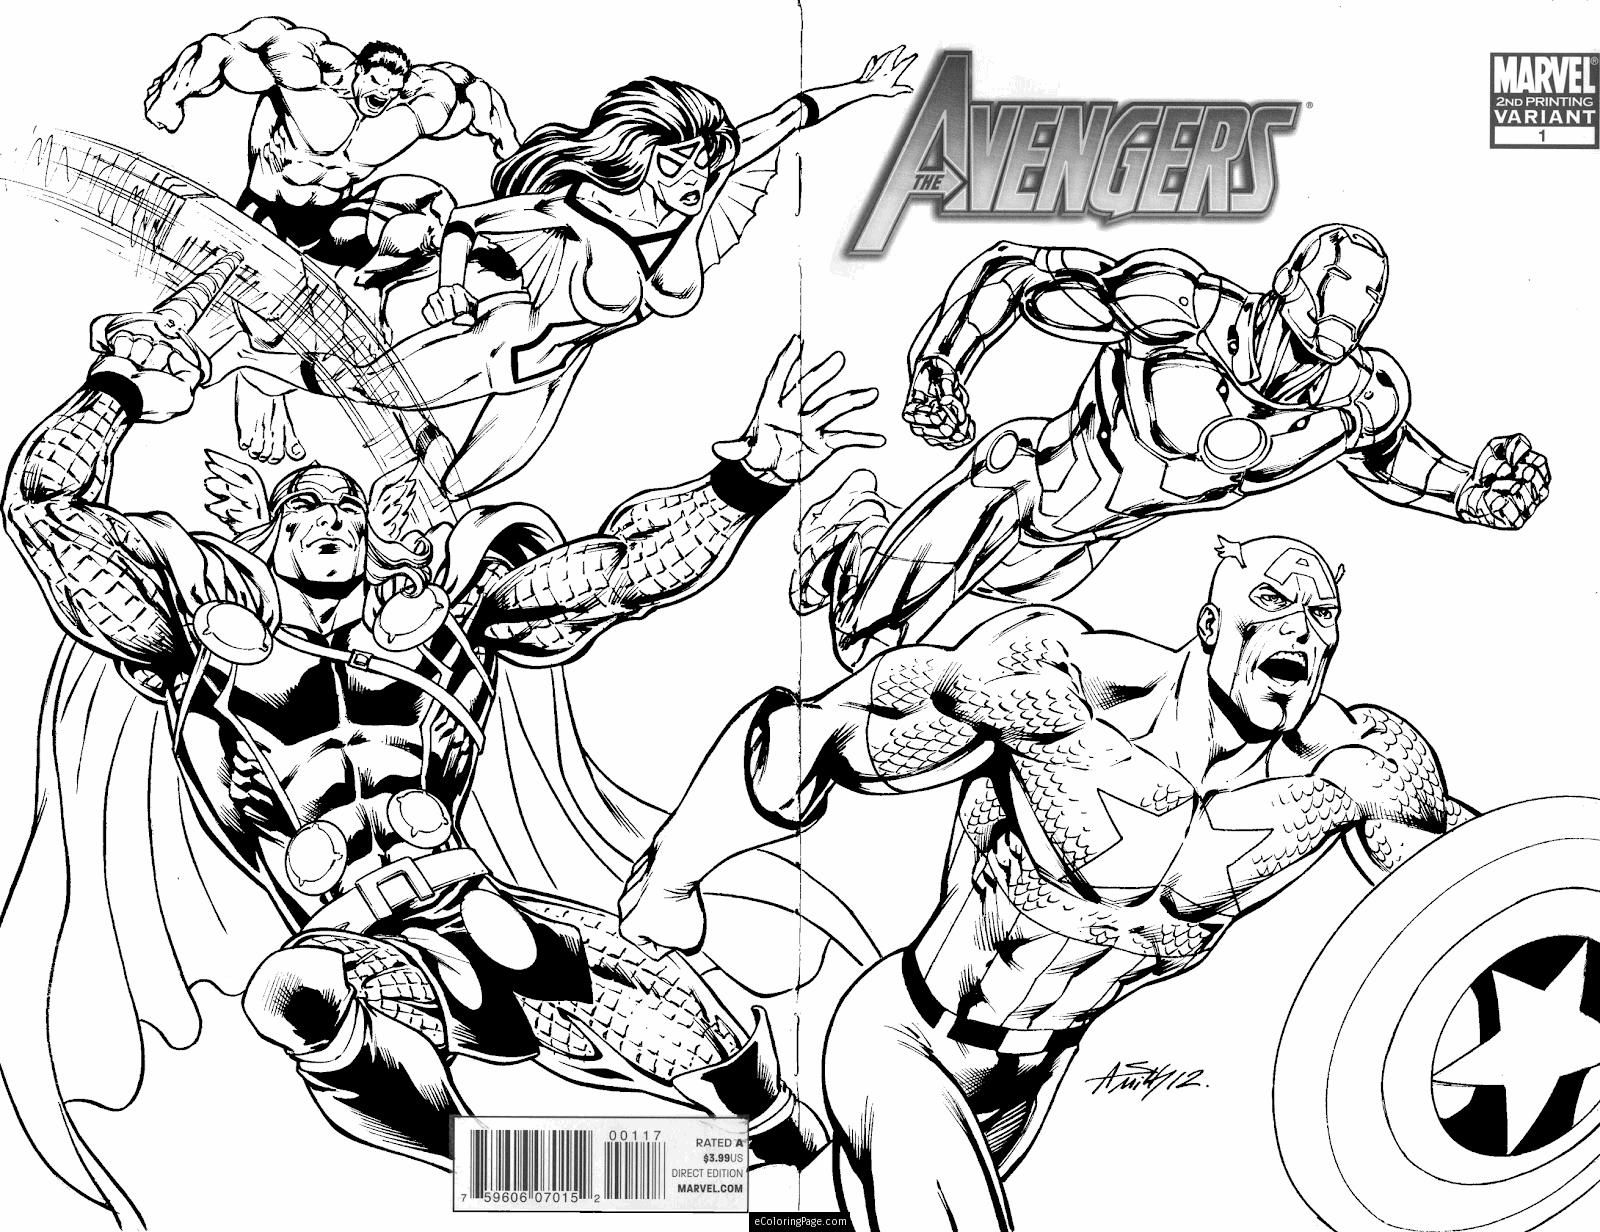 Marvel Superheroes Avengers In Action Coloring Page for Kids Printable Of Innovative Ideas Hulk Coloring Pages Hulk Coloring Pages Get This Gallery